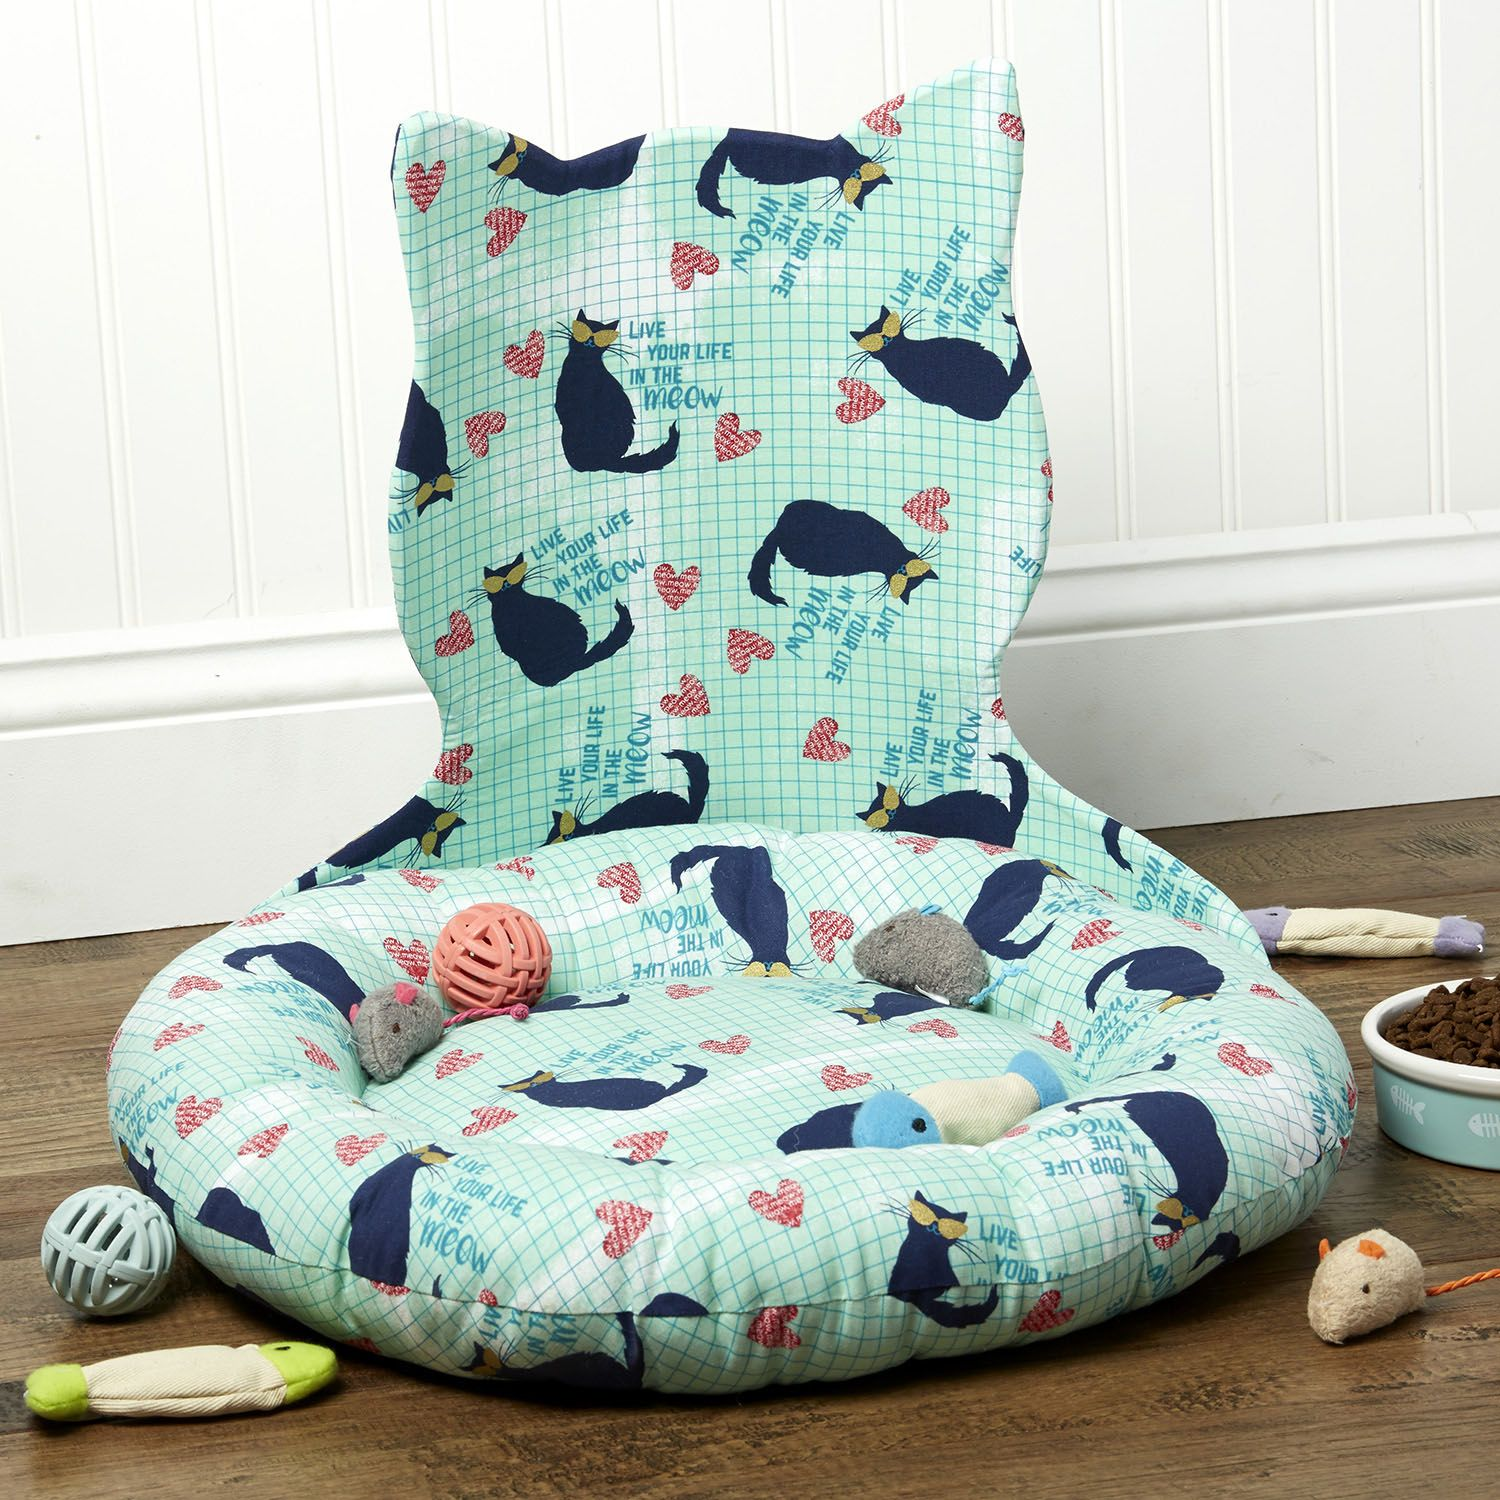 How To Sew A Purrfect Cat Bed JoAnn JoAnn Diy cat